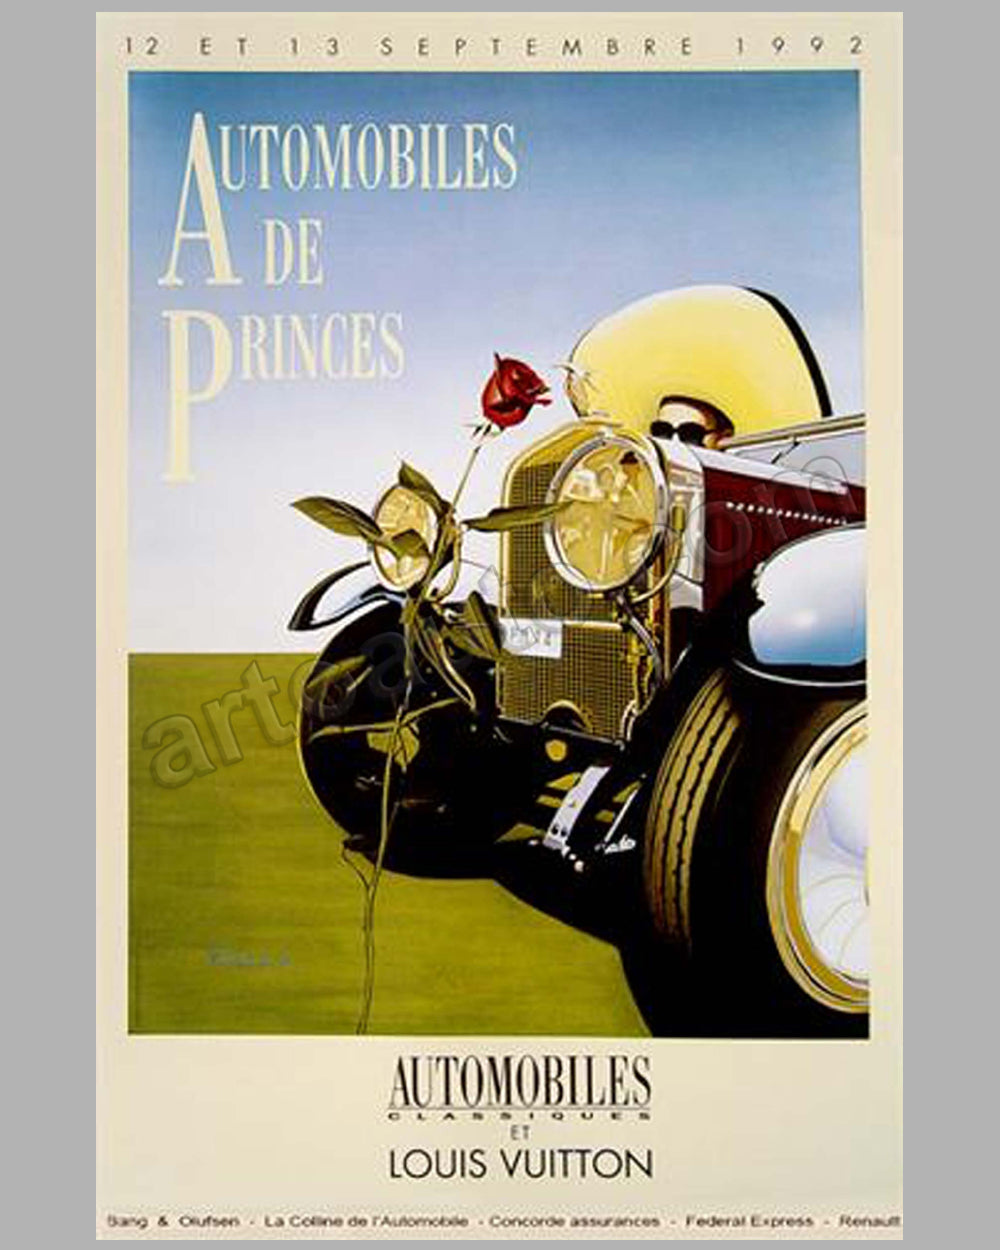 Automobiles de Princes 1992 large poster by Razzia